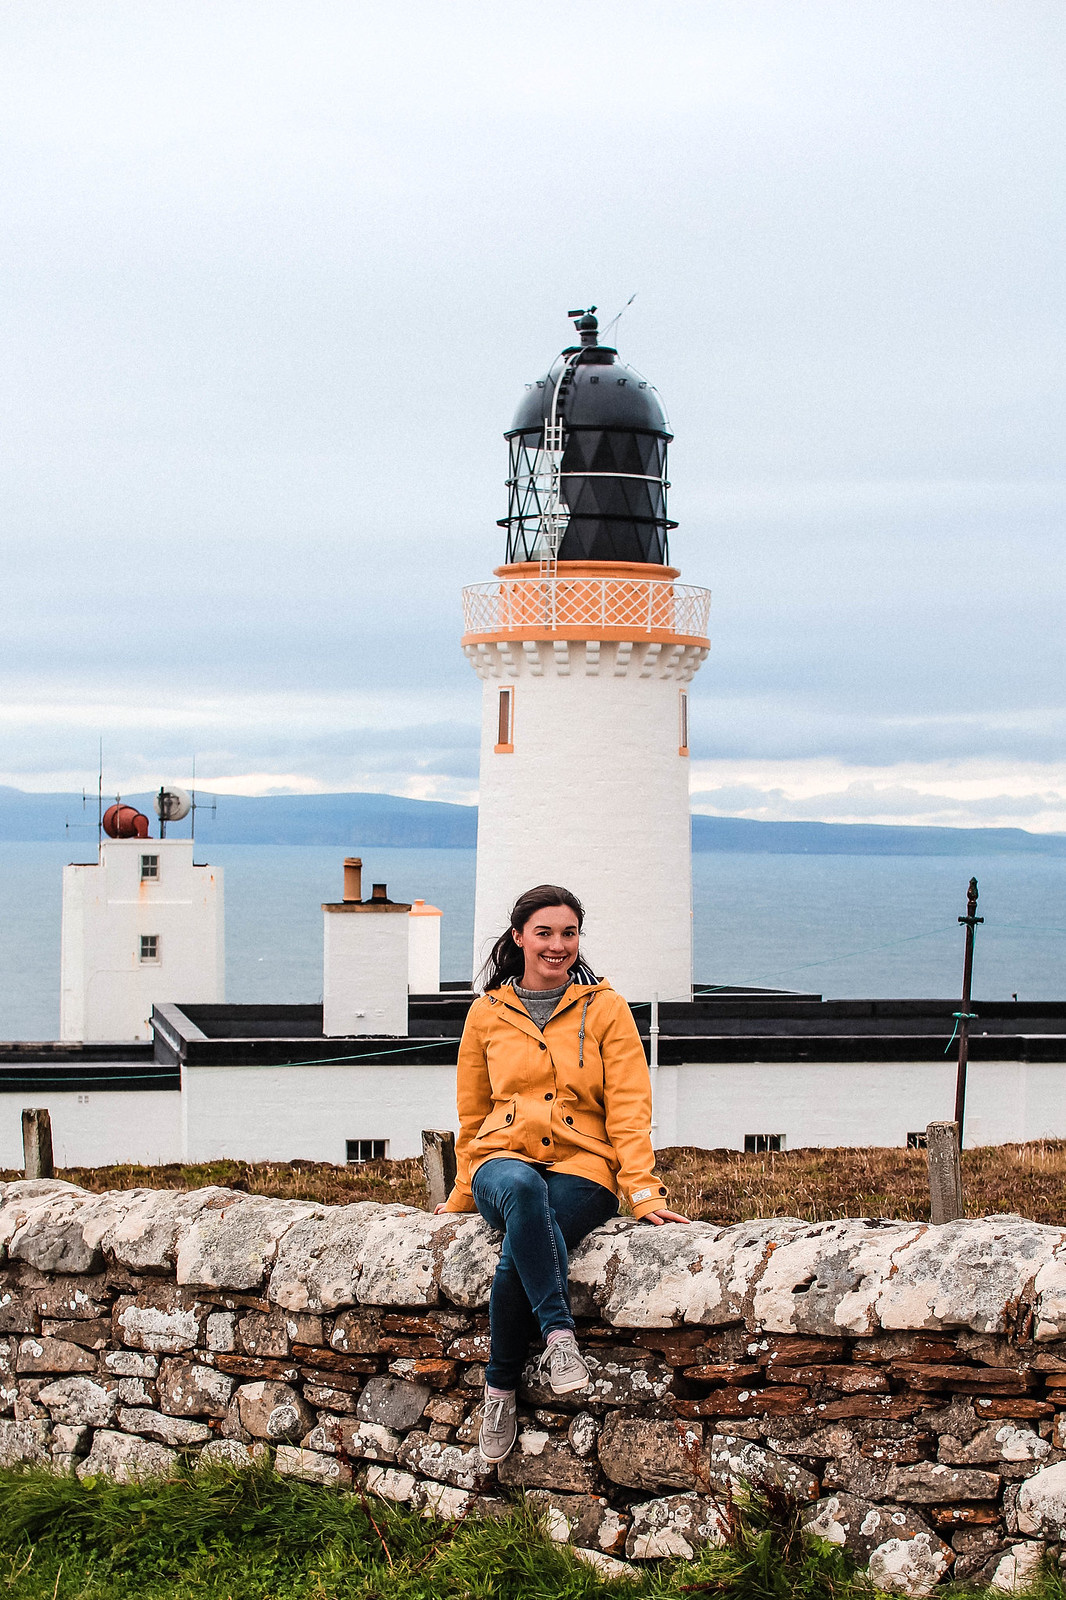 Dunnet Head Scotland NC500 best coastal views travel blogger UK lighthouse most northern point The Little Things